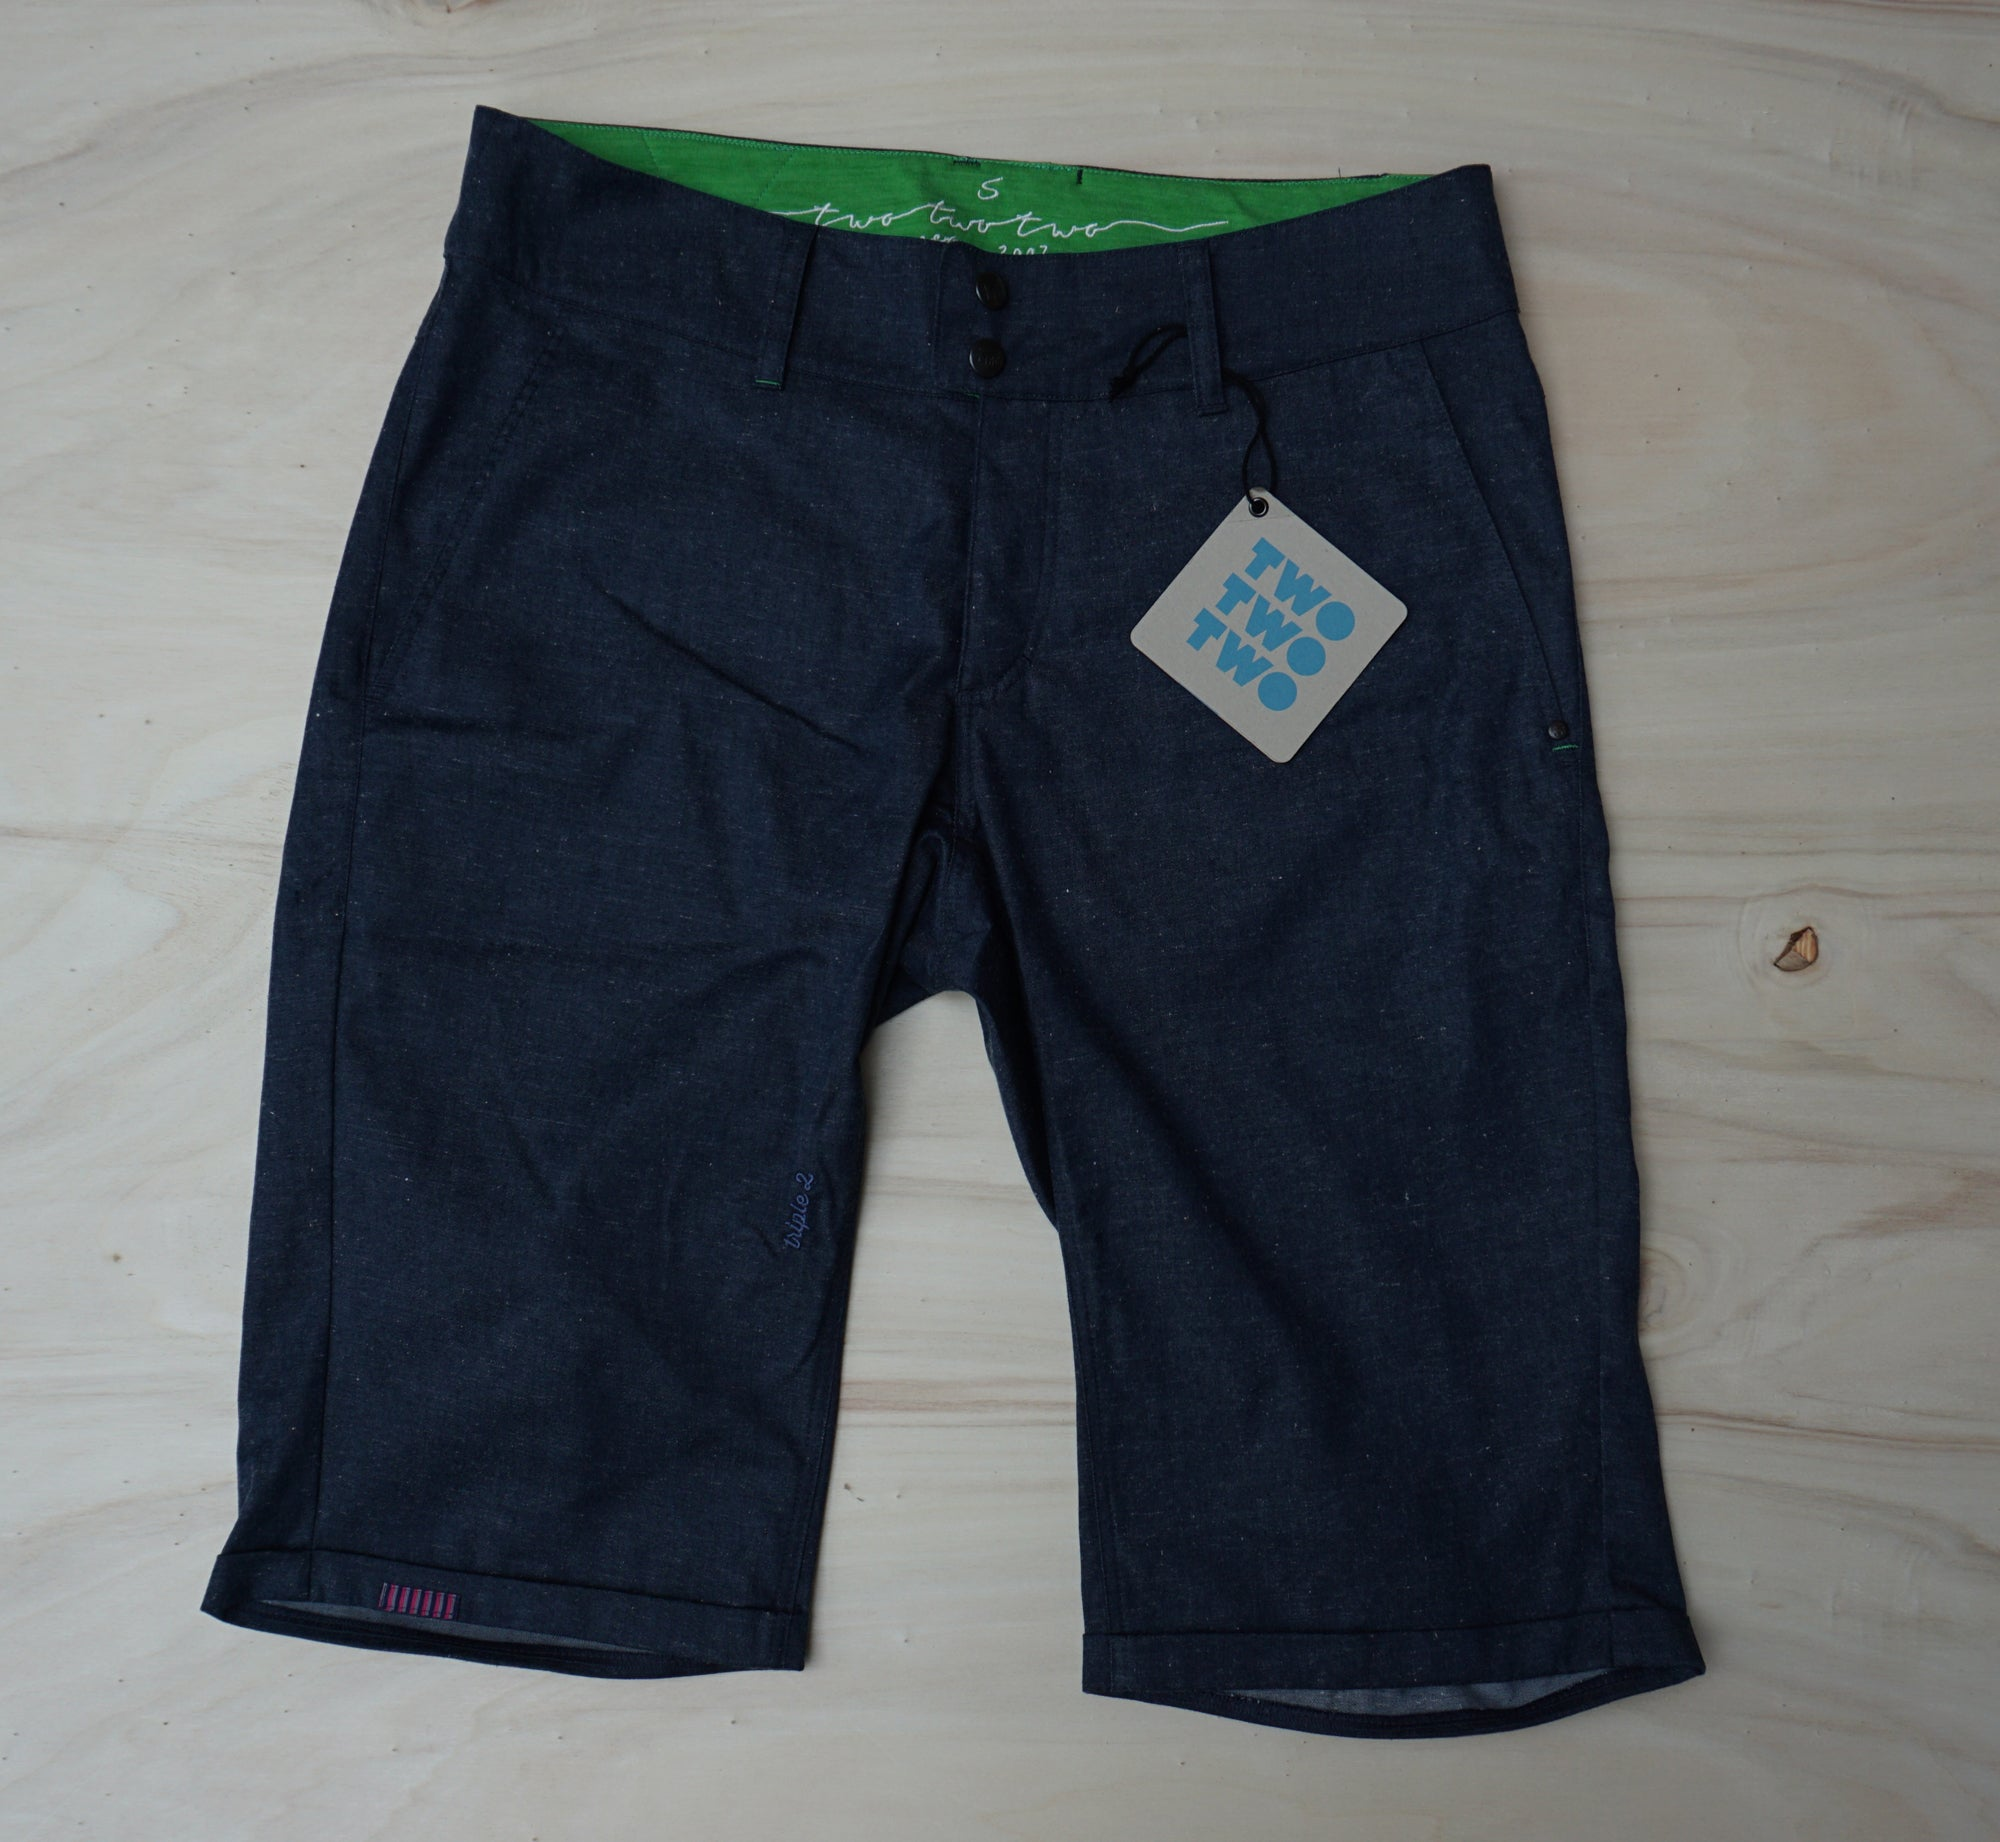 Kort Men Shorts, denimblue - triple2